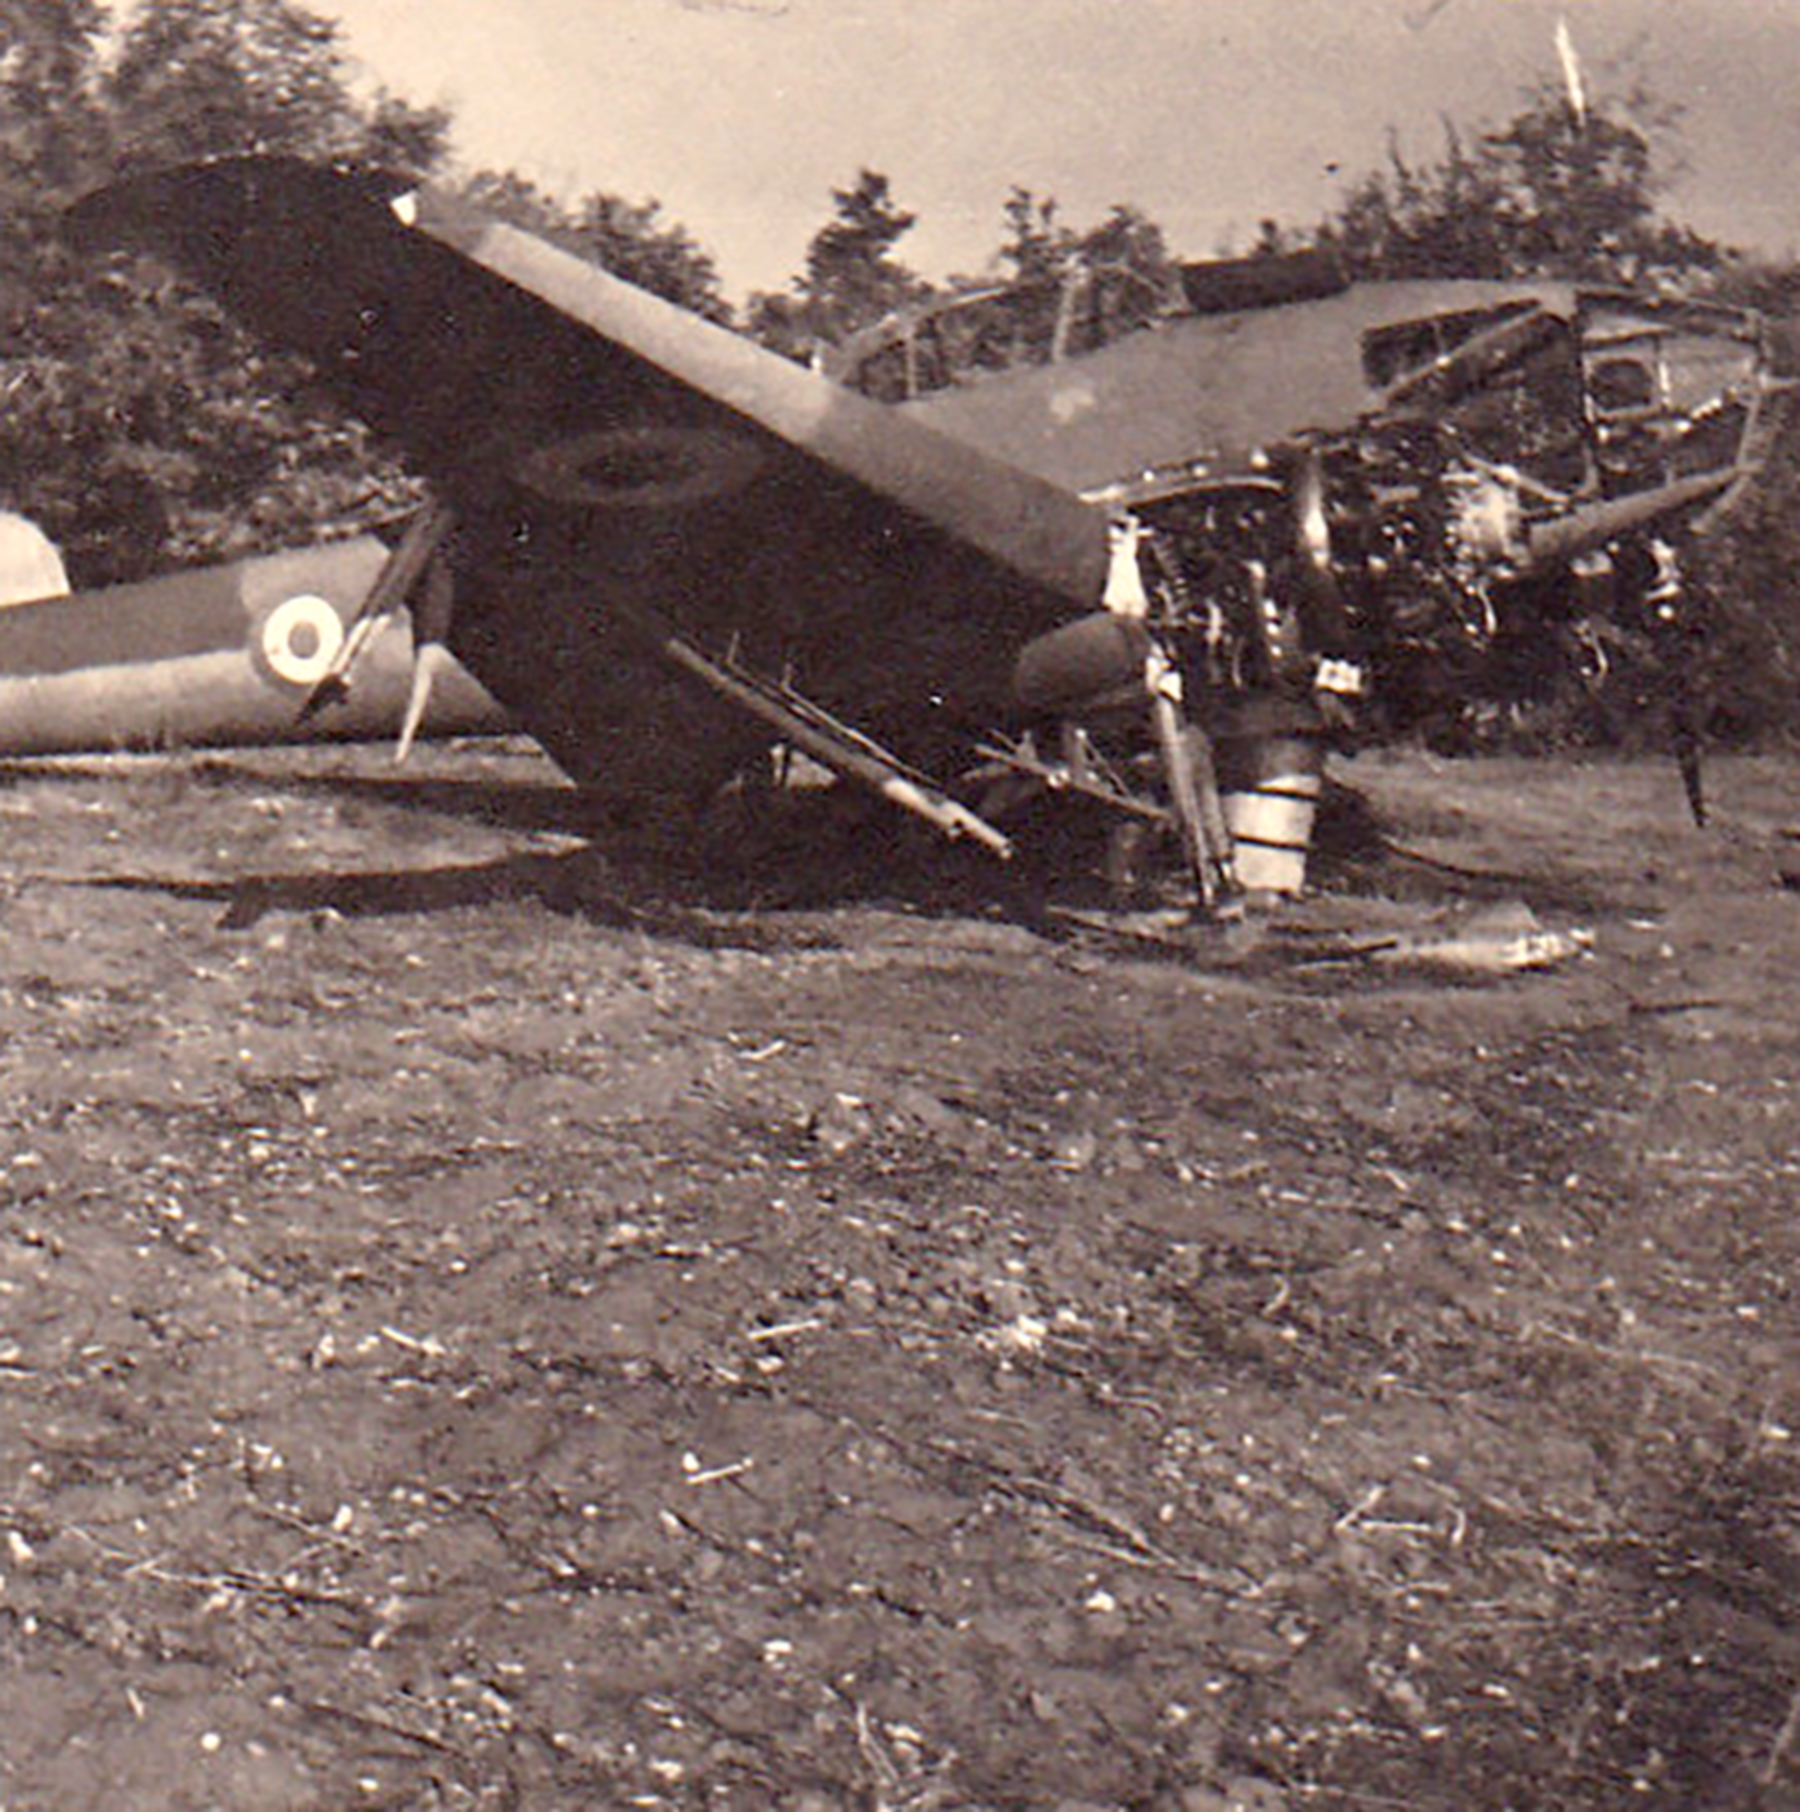 French Airforce Potez 63.11 captured during the battle of France 1940 ebay 02